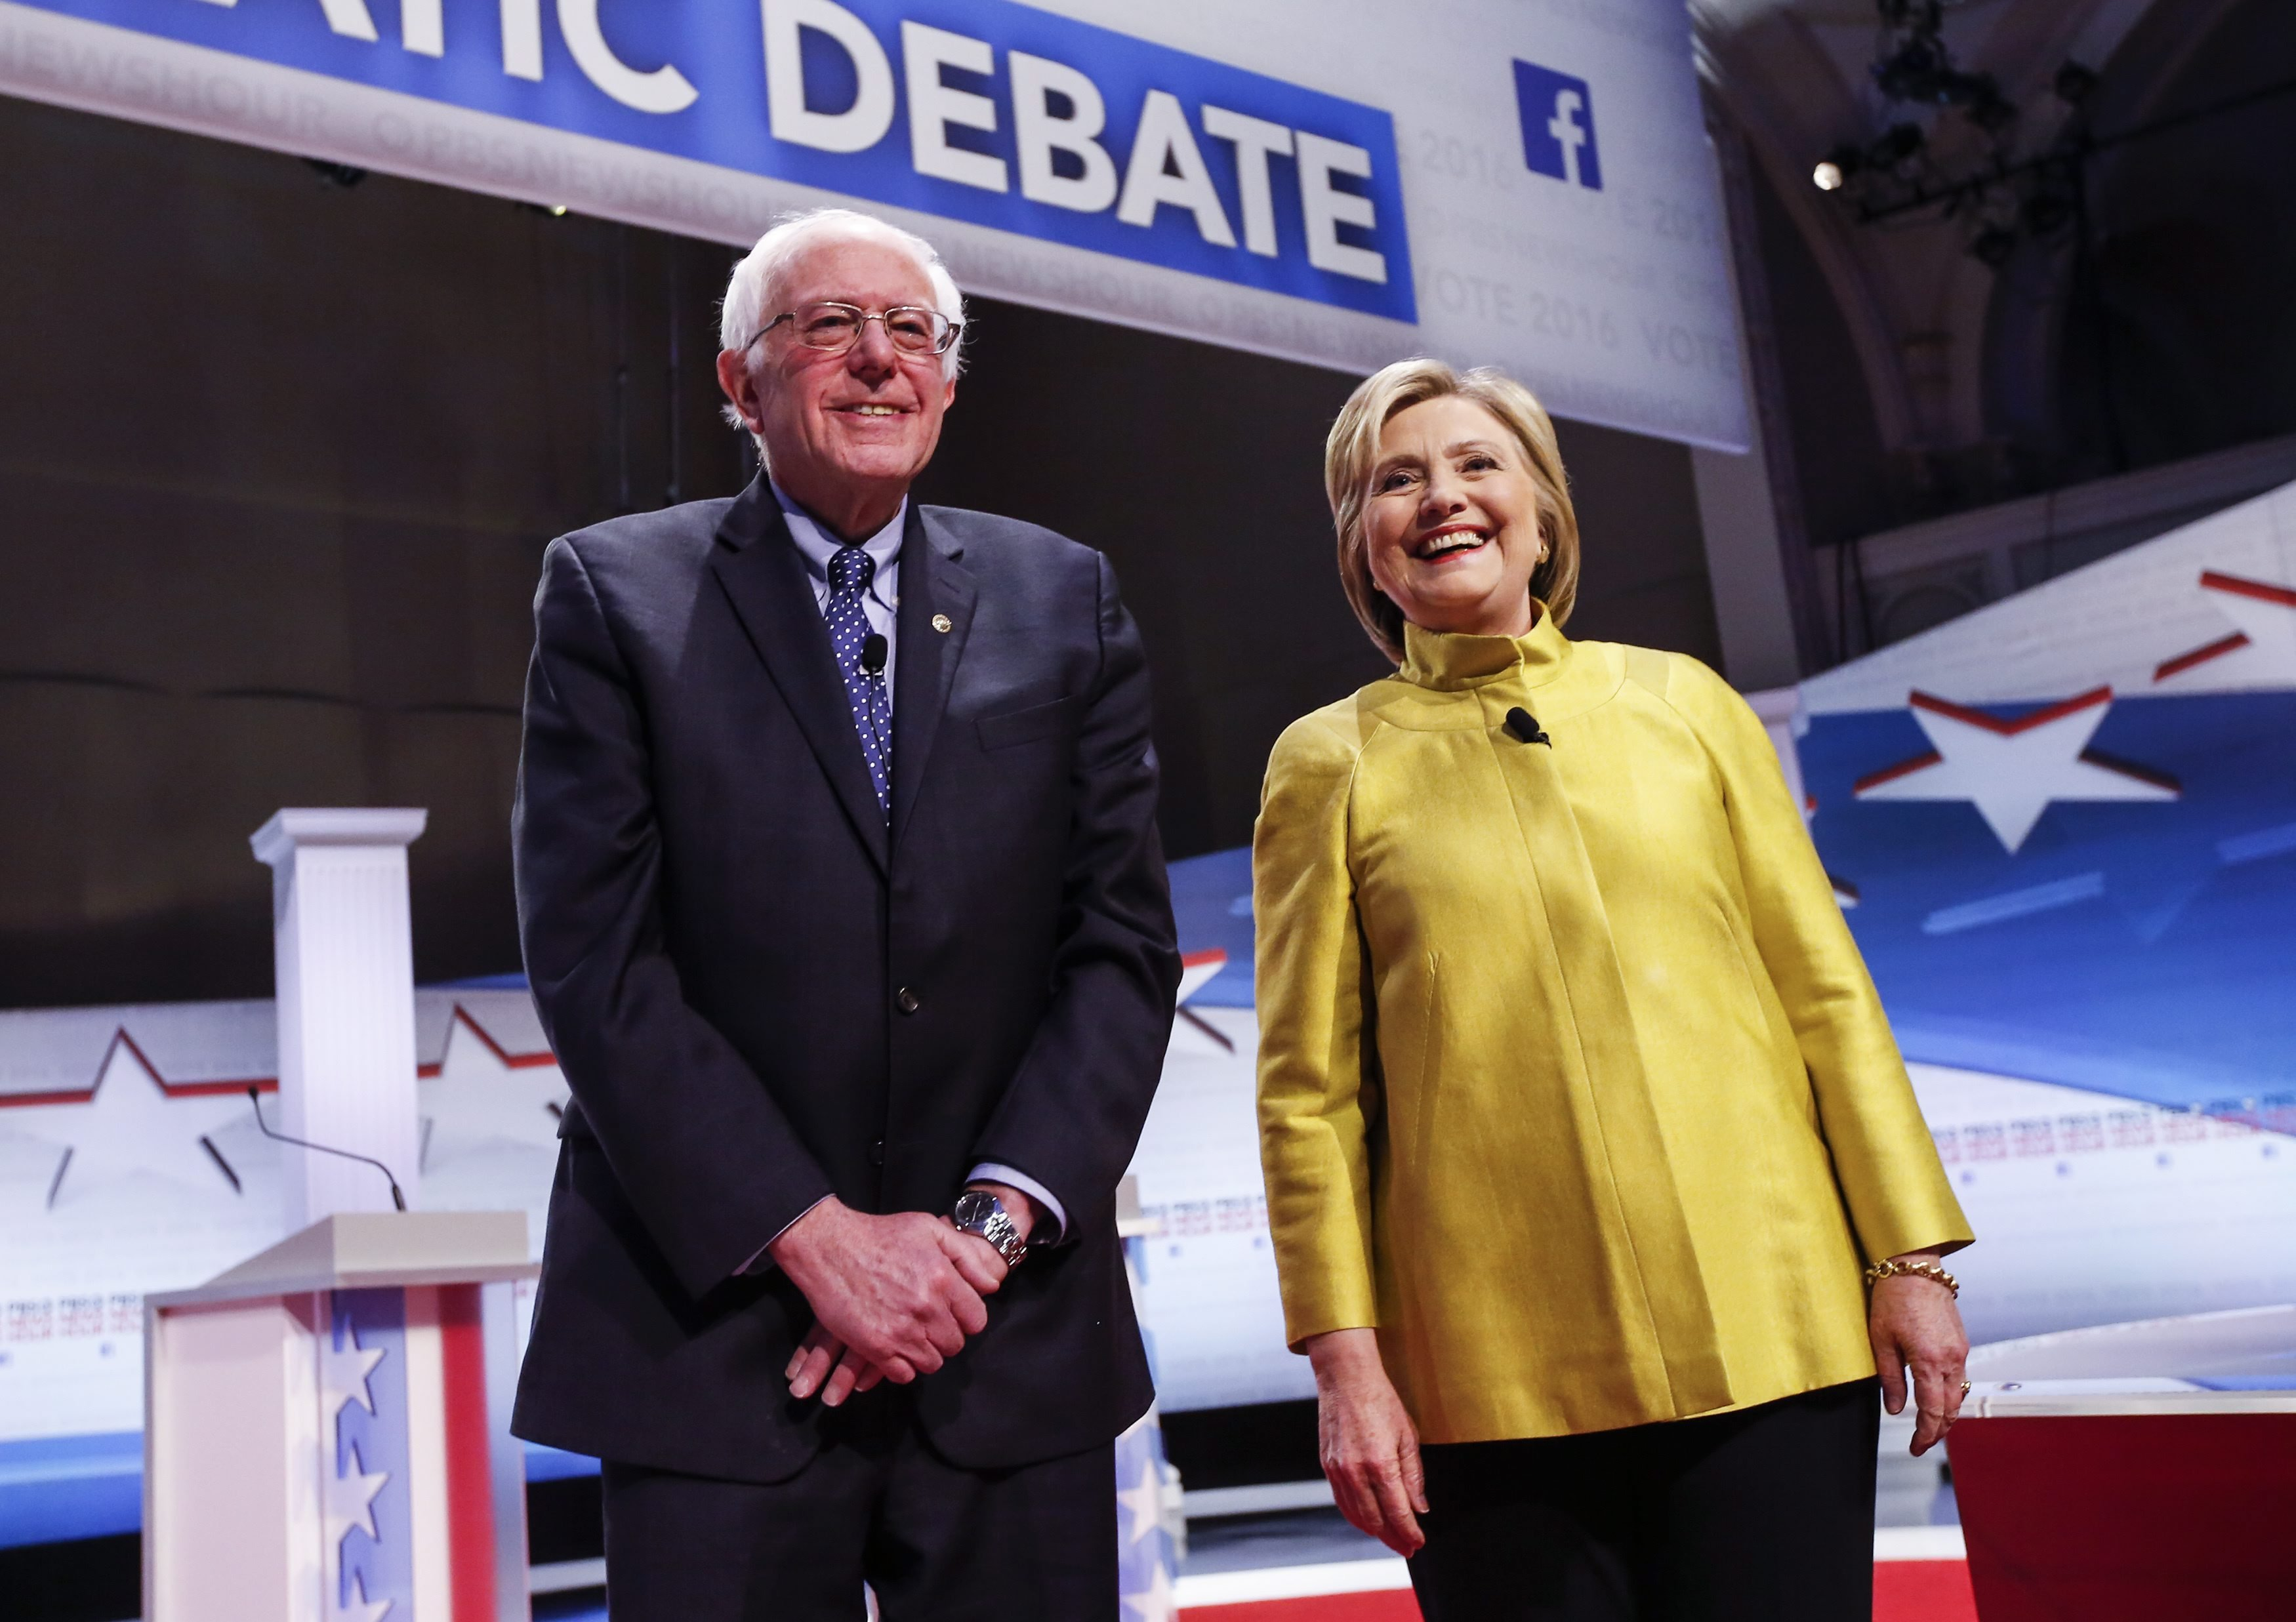 Bernie Sanders and Hillary Clinton participate in the PBS NewsHour Democratic debate in Milwaukee, Wisconsin on Feb. 11, 2016.